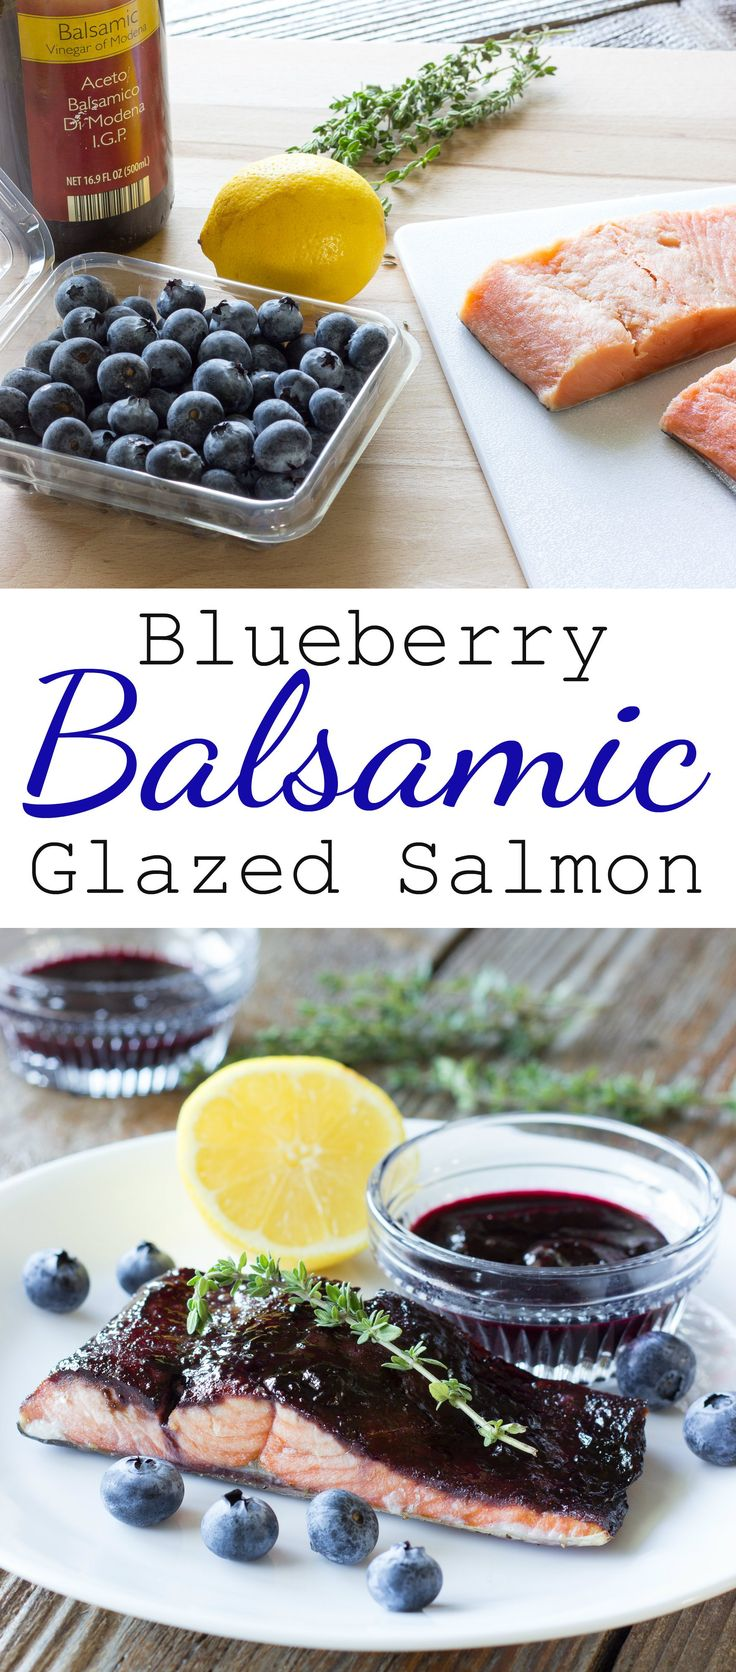 Salmon is glazed in a sticky, flavorful sauce made of blueberries, balsamic, sugar, thyme, and lemon.  #salmon #blueberry